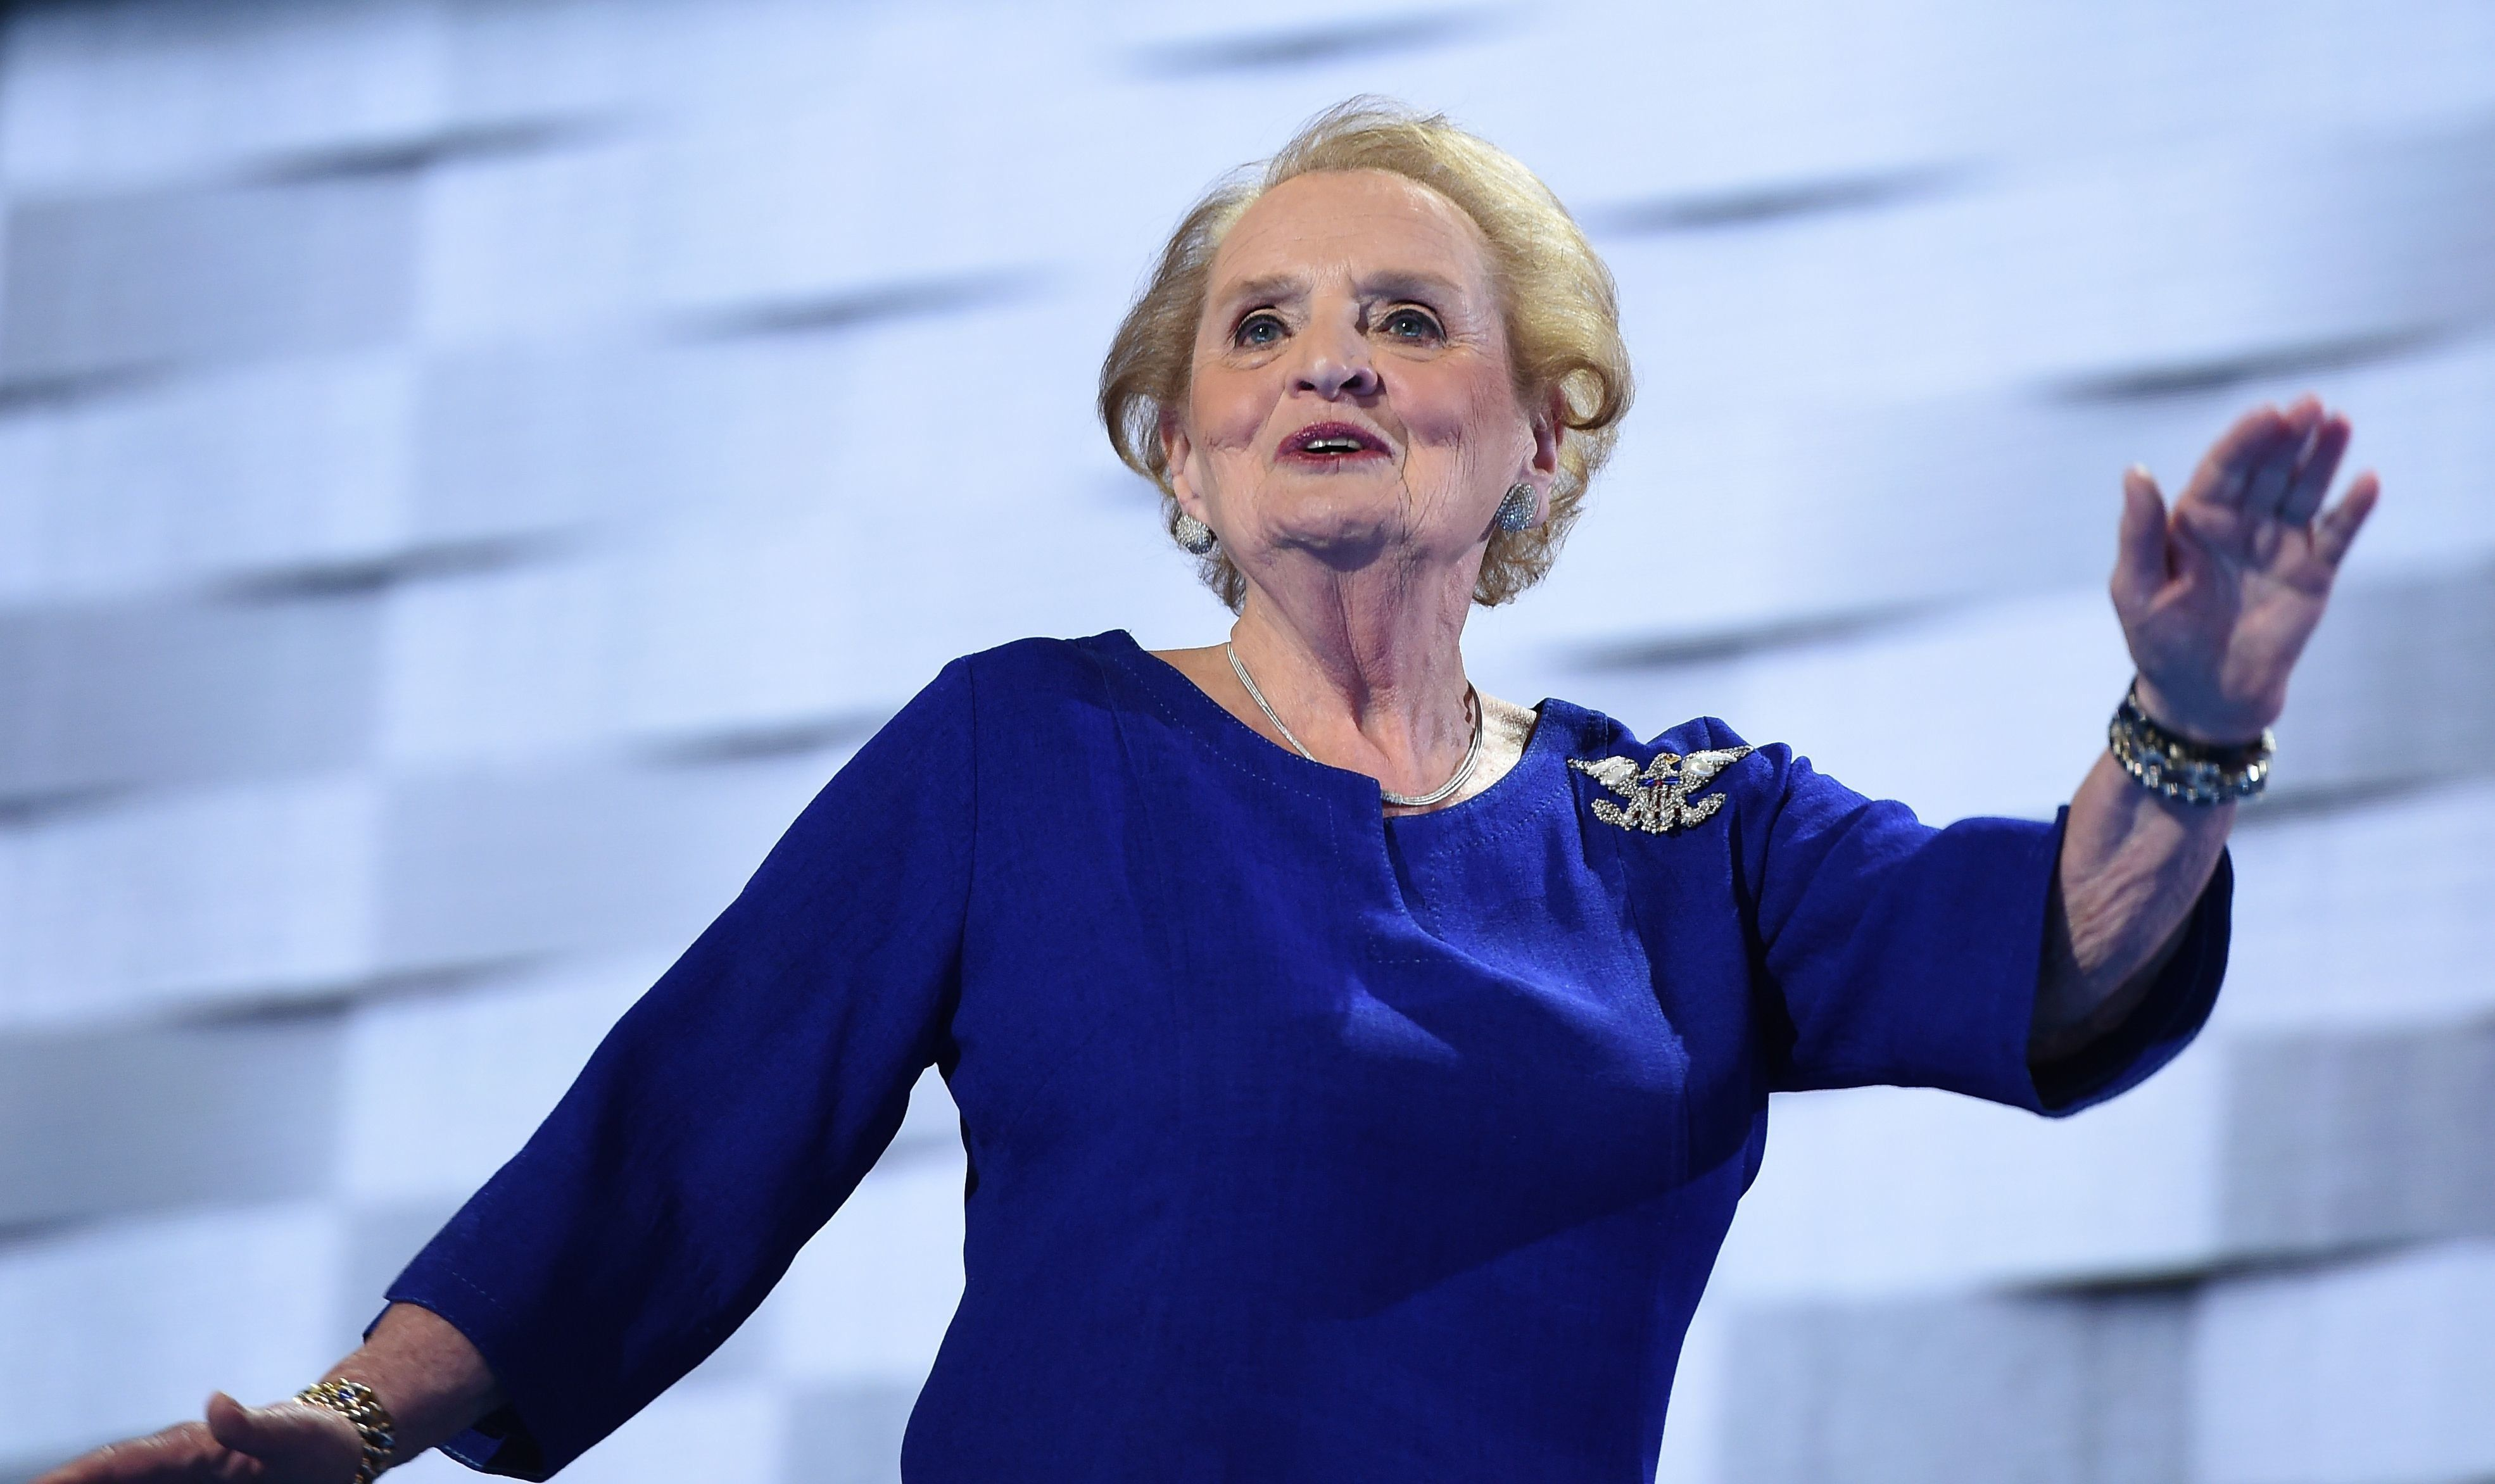 Former US Secretary of State Madeleine Albright waves as she arrives to speak on the second day of the Democratic National Convention at the Wells Fargo Center, July 26, 2016 in Philadelphia, Pennsylvania.      / AFP / Robyn BECK        (Photo credit should read ROBYN BECK/AFP/Getty Images)